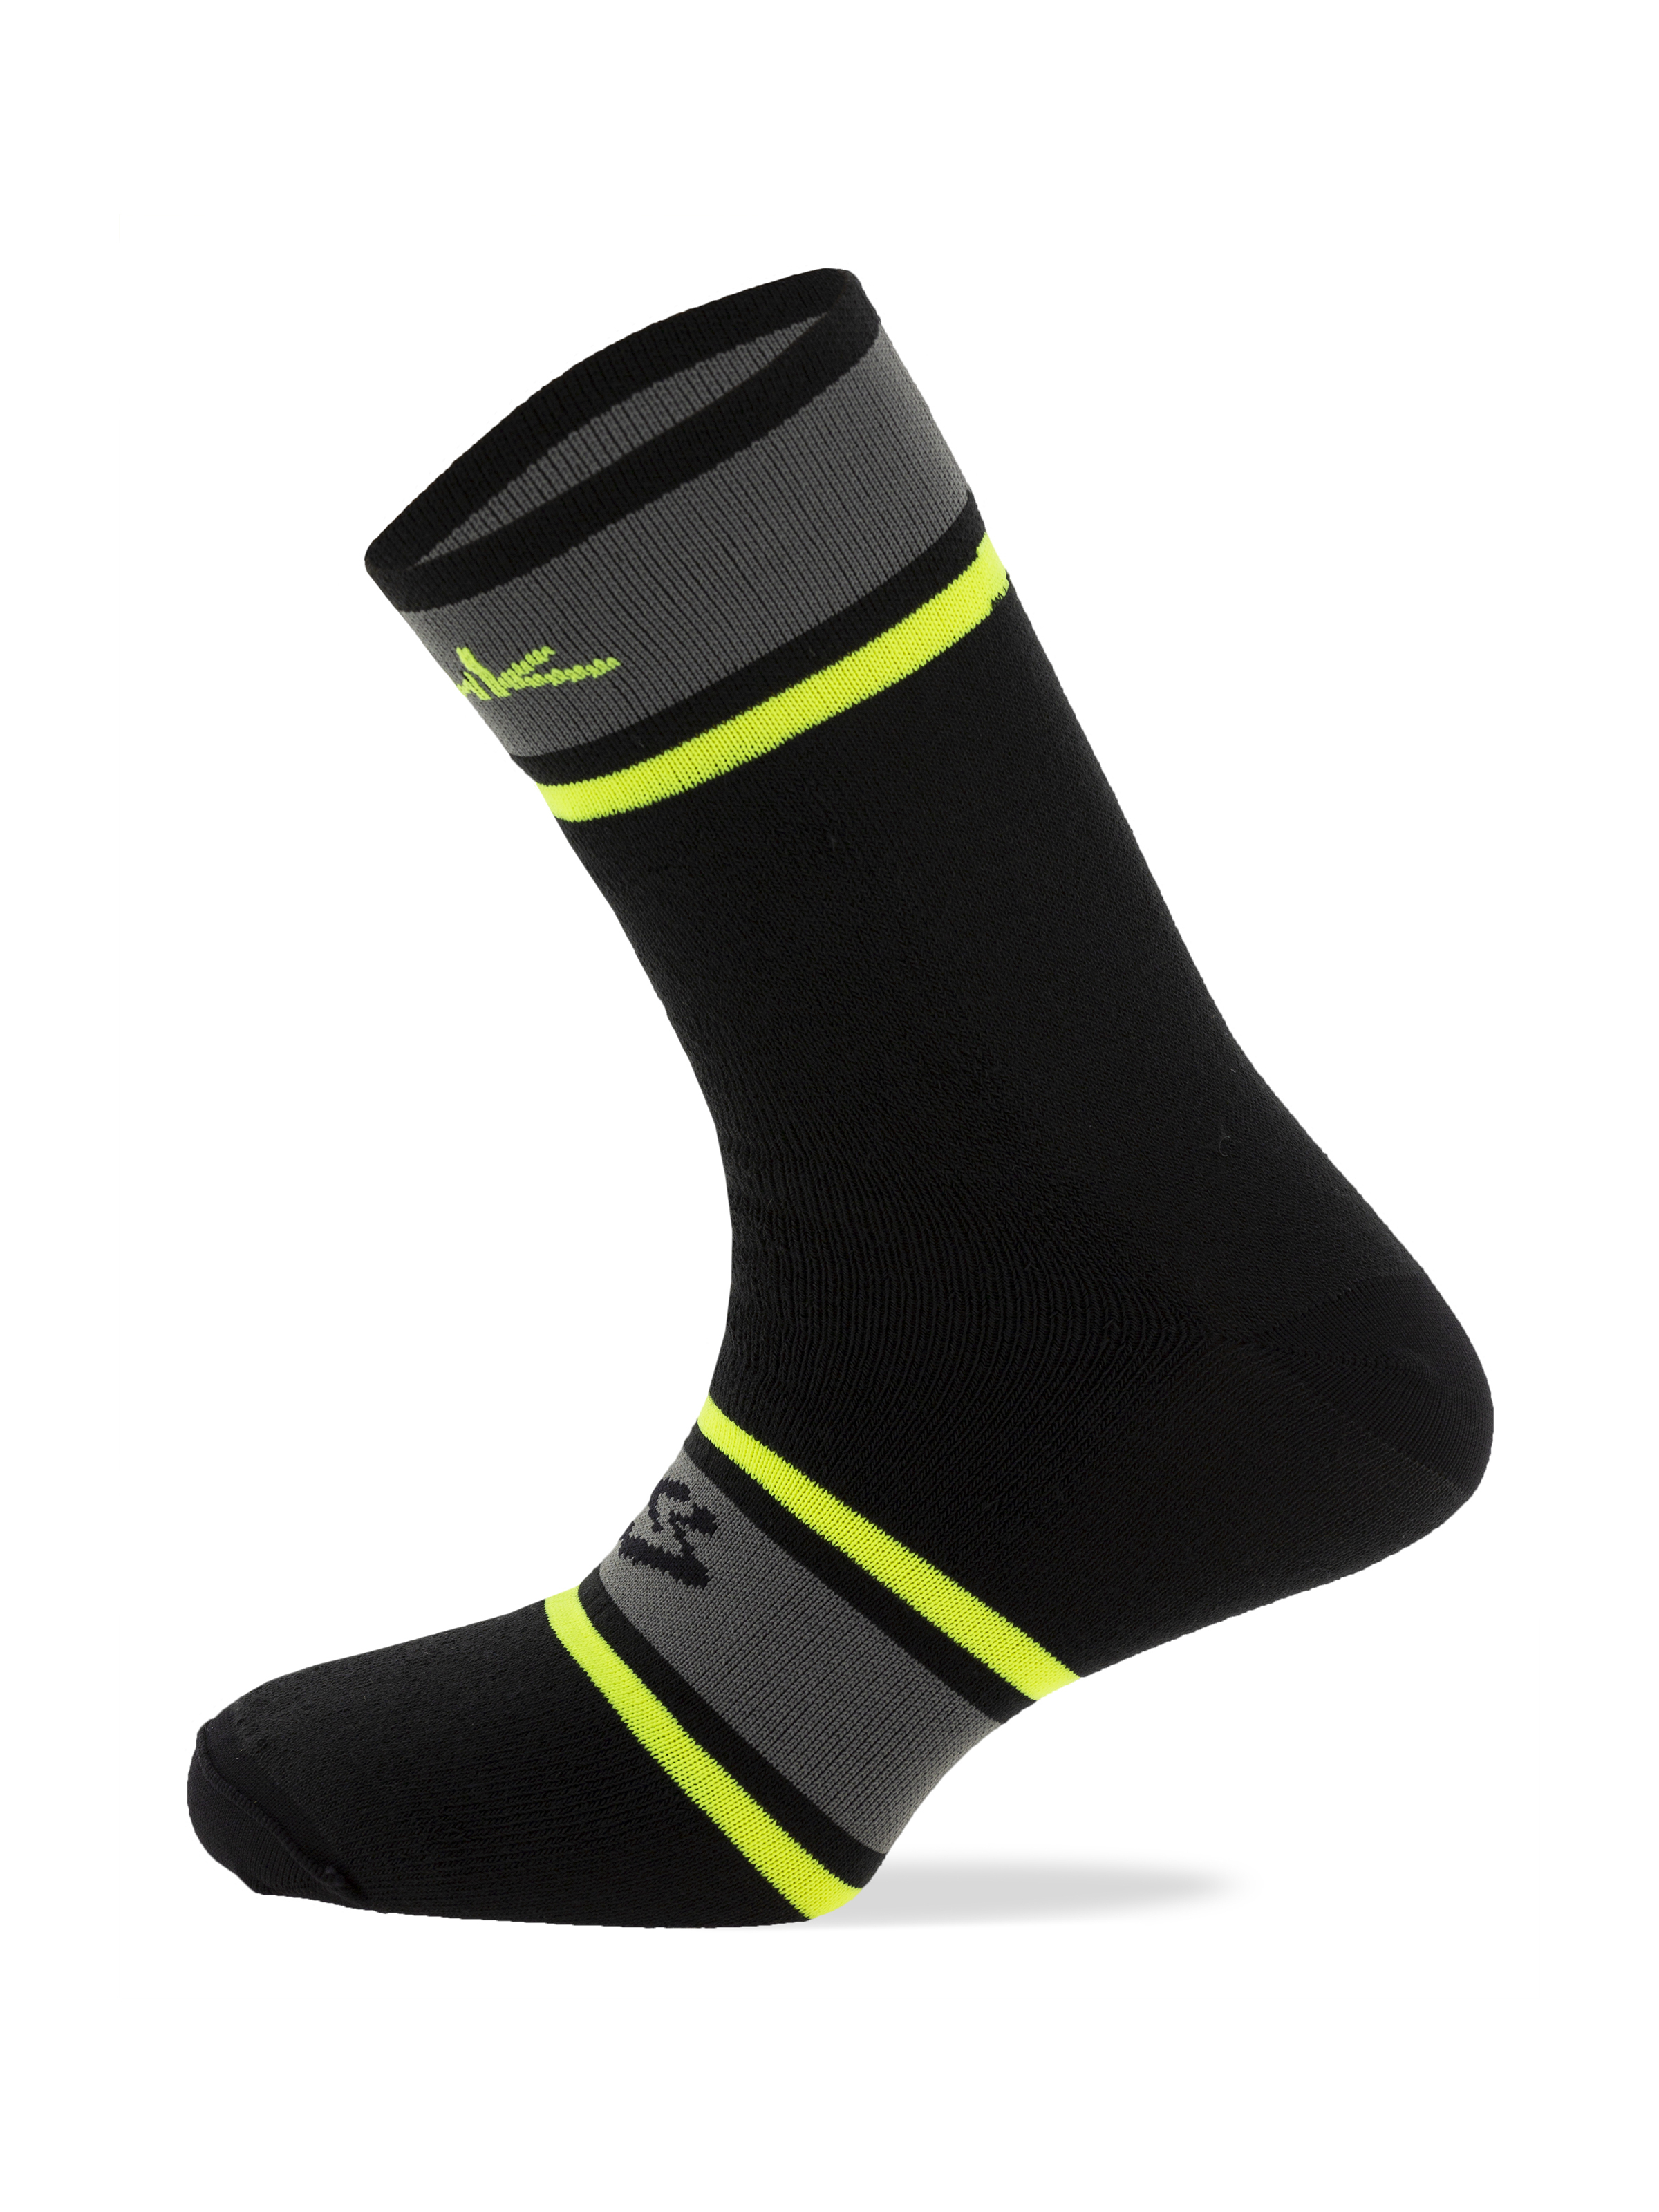 ANATOMIC LARGO UNIS SPIUK CALCETINES CICLISMO CALCETIN PACK 3 UDS